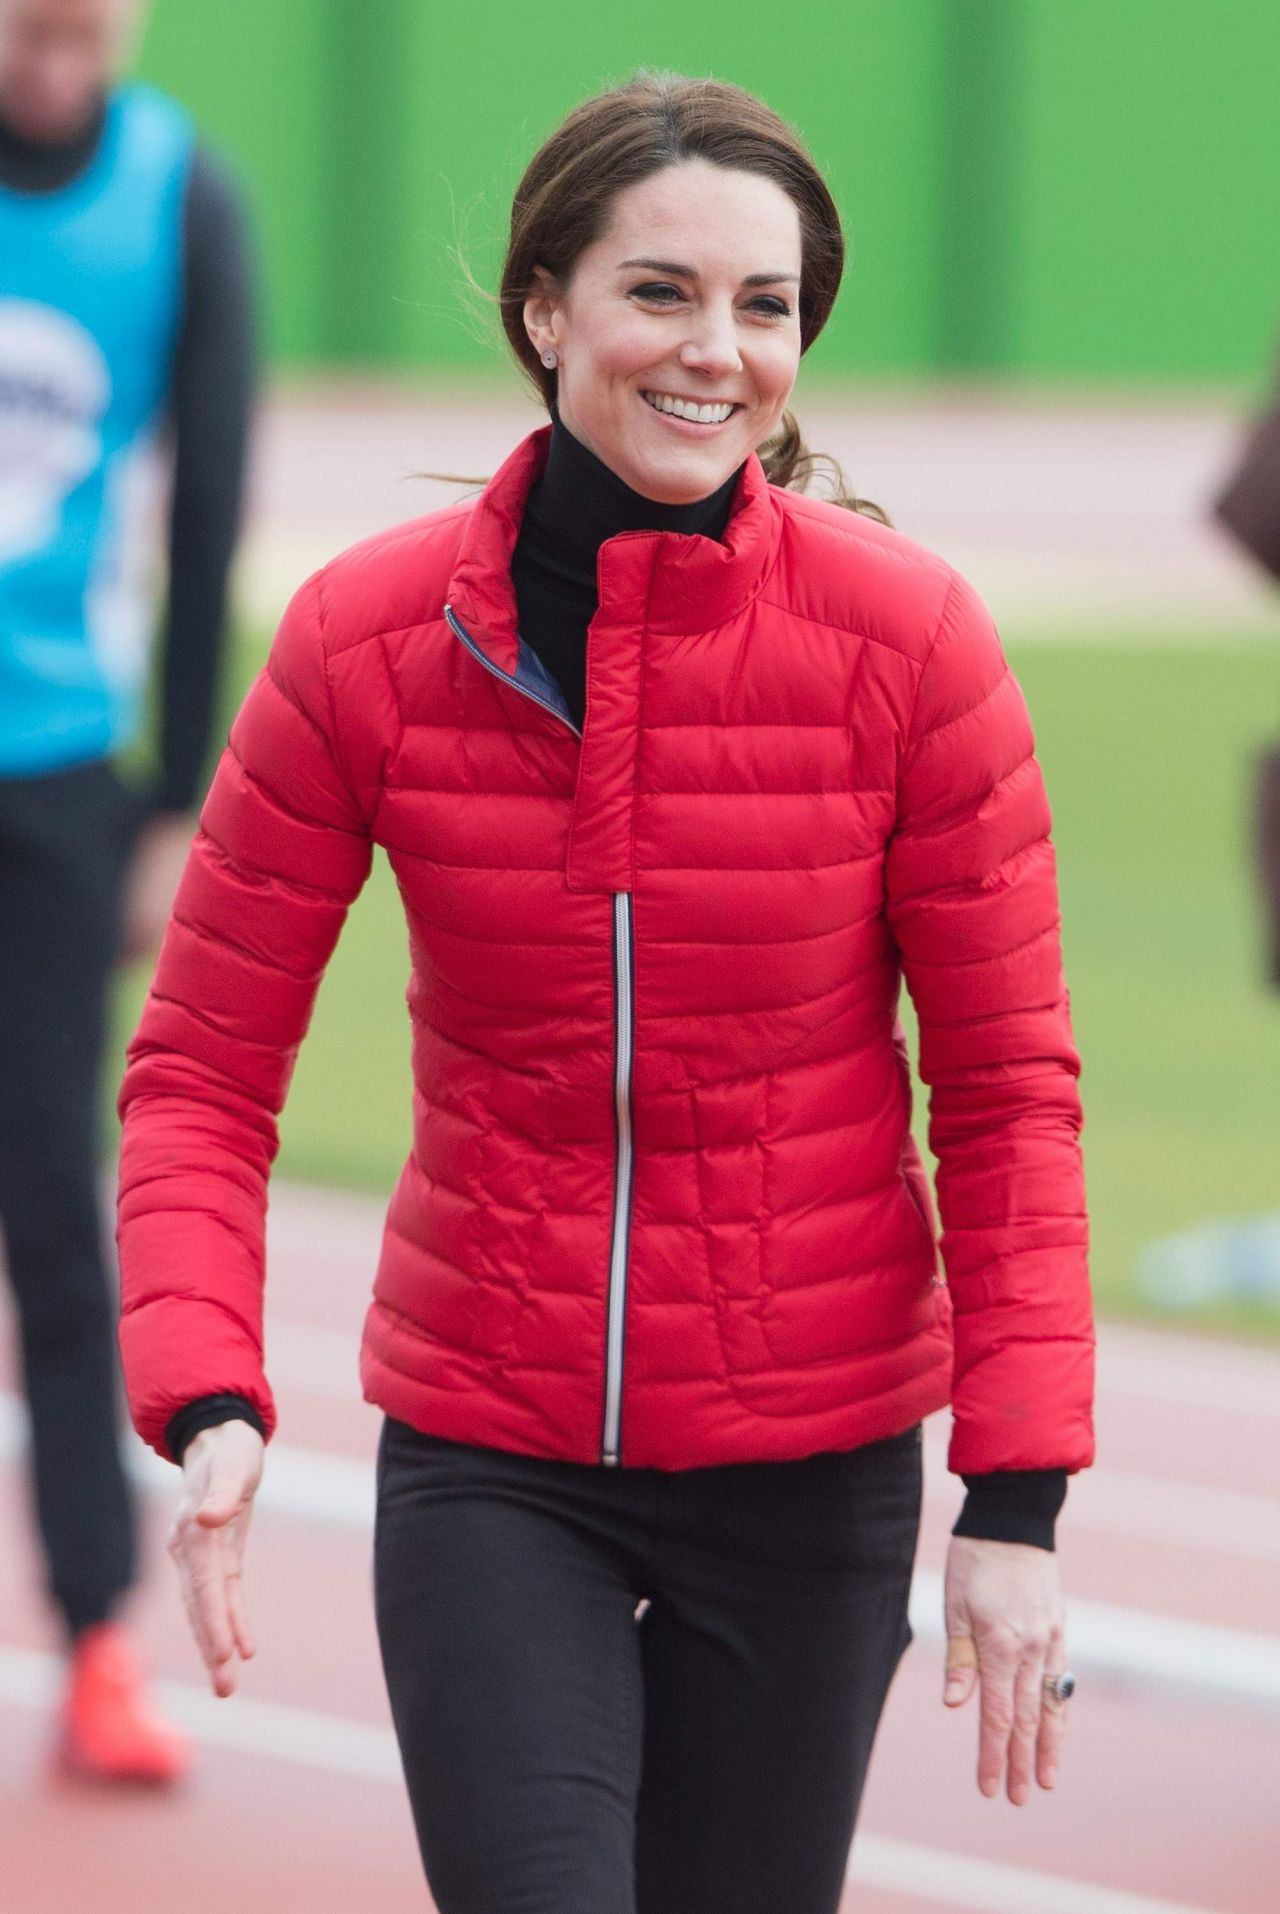 Kate Middleton, Duchess Of Cambridge Latest News, Pictures Kate middleton recent photos